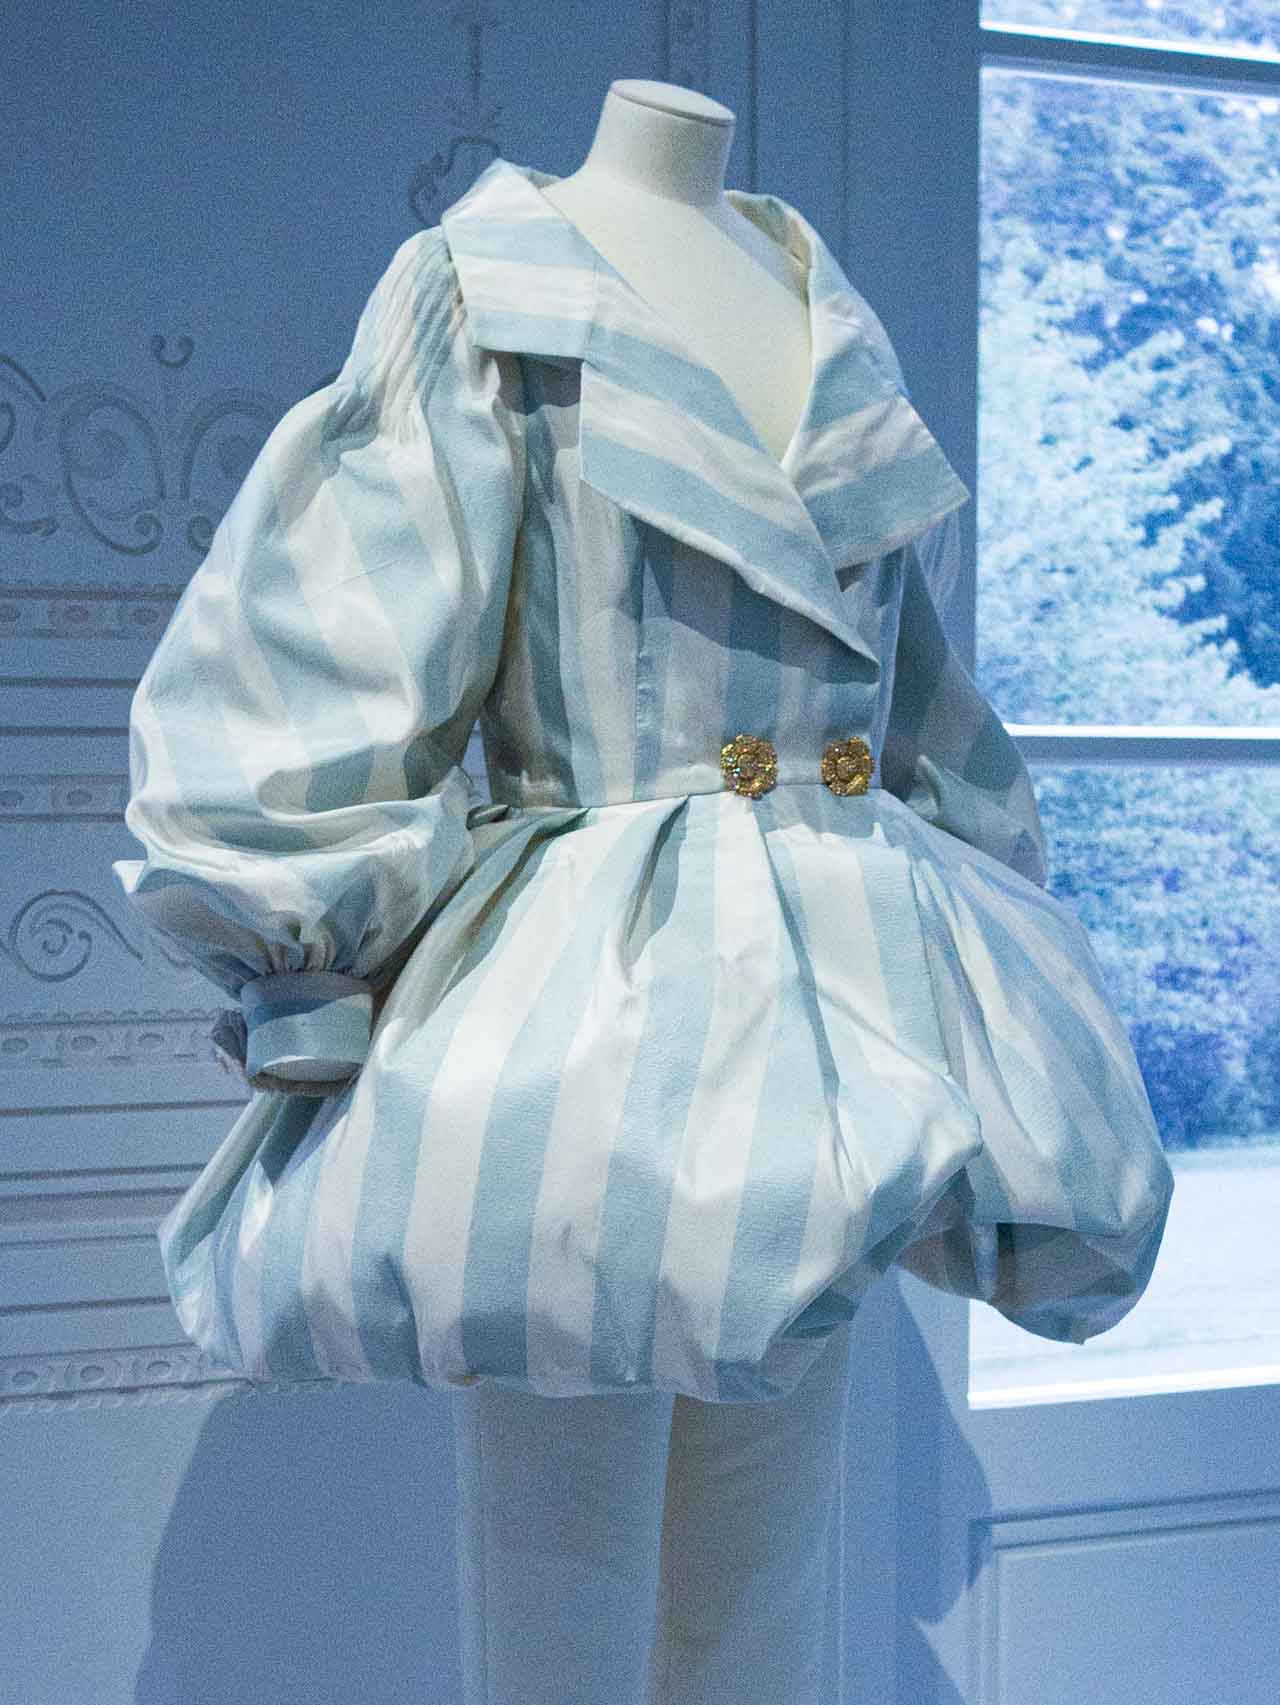 White and blue jacket inspired by women's riding habit 1700s. Christian Dior by Gianfranco Ferré, Ready-to-wear, Spring-Summer 1993. Taken at the V&A exhibition © The Cutting Class, 2019.